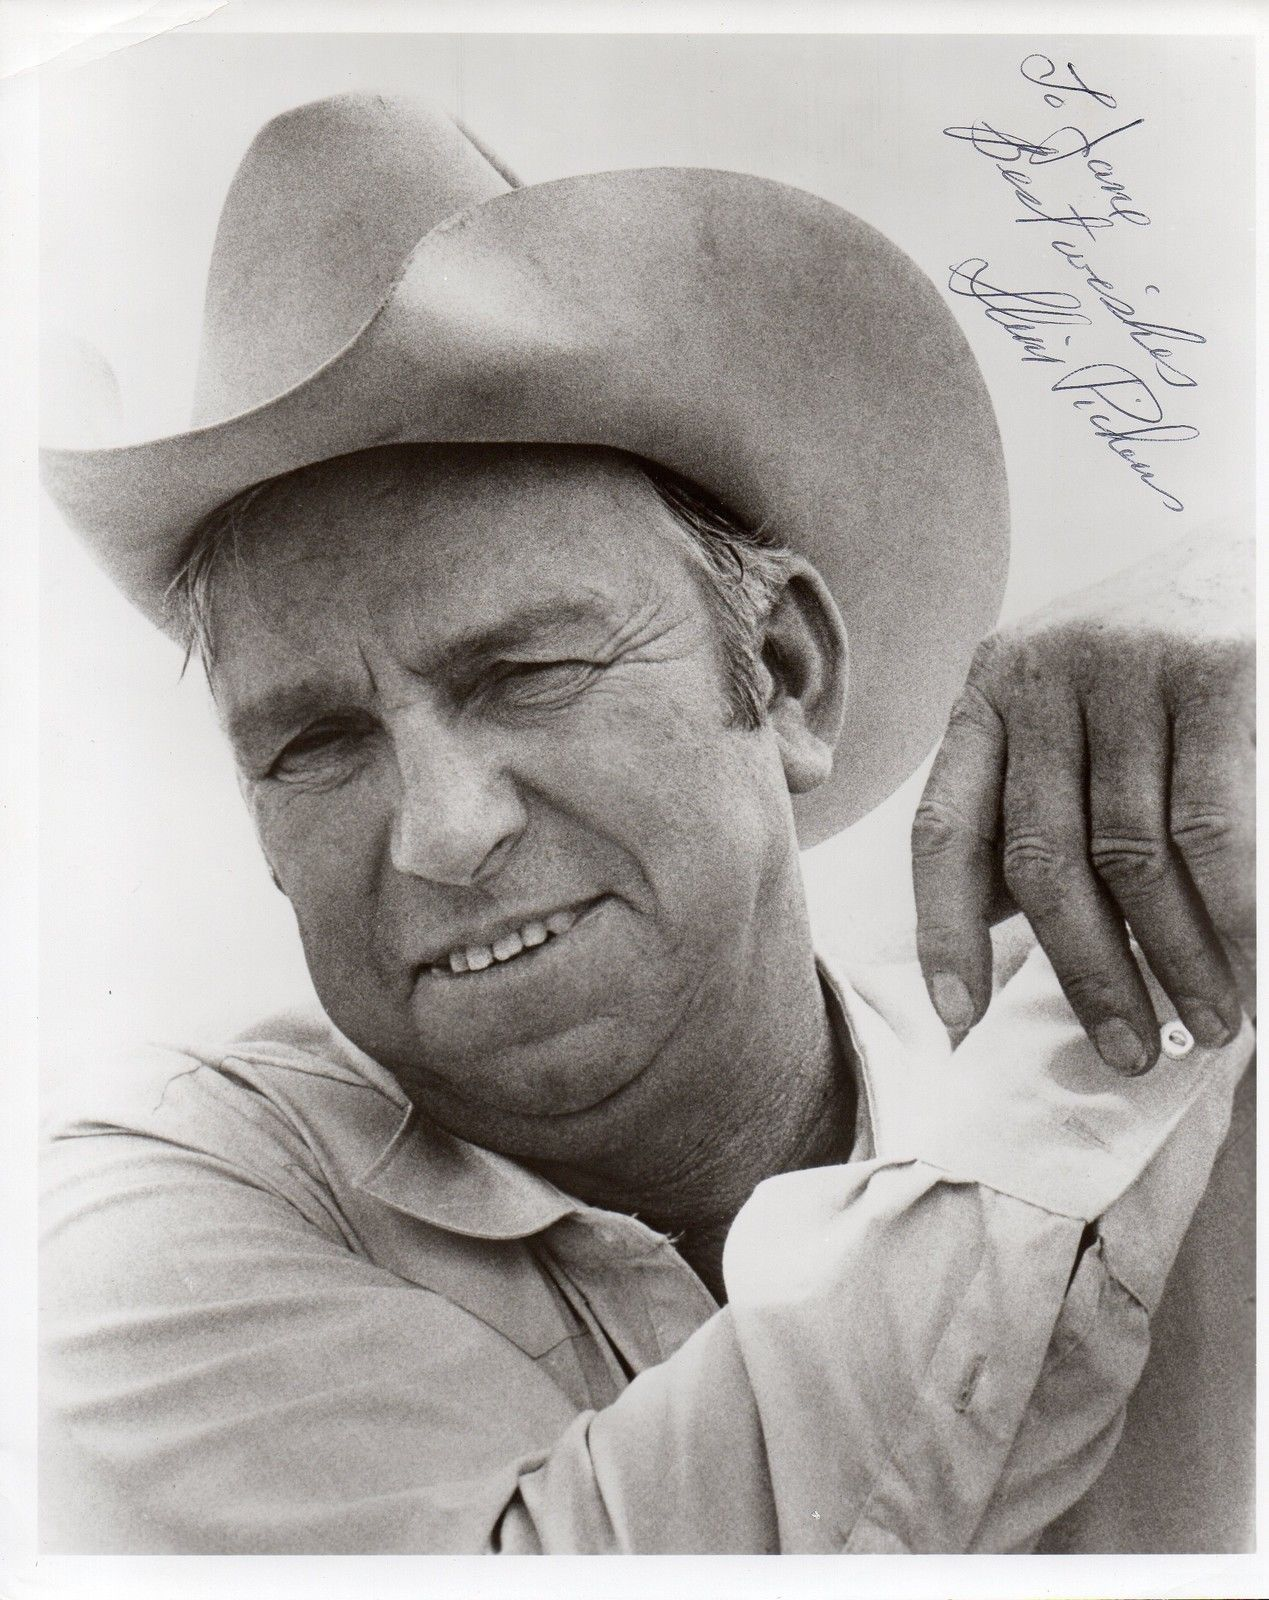 SLIM PICKENS Autographed 8x10 photo. Nicely inscribed and signed.